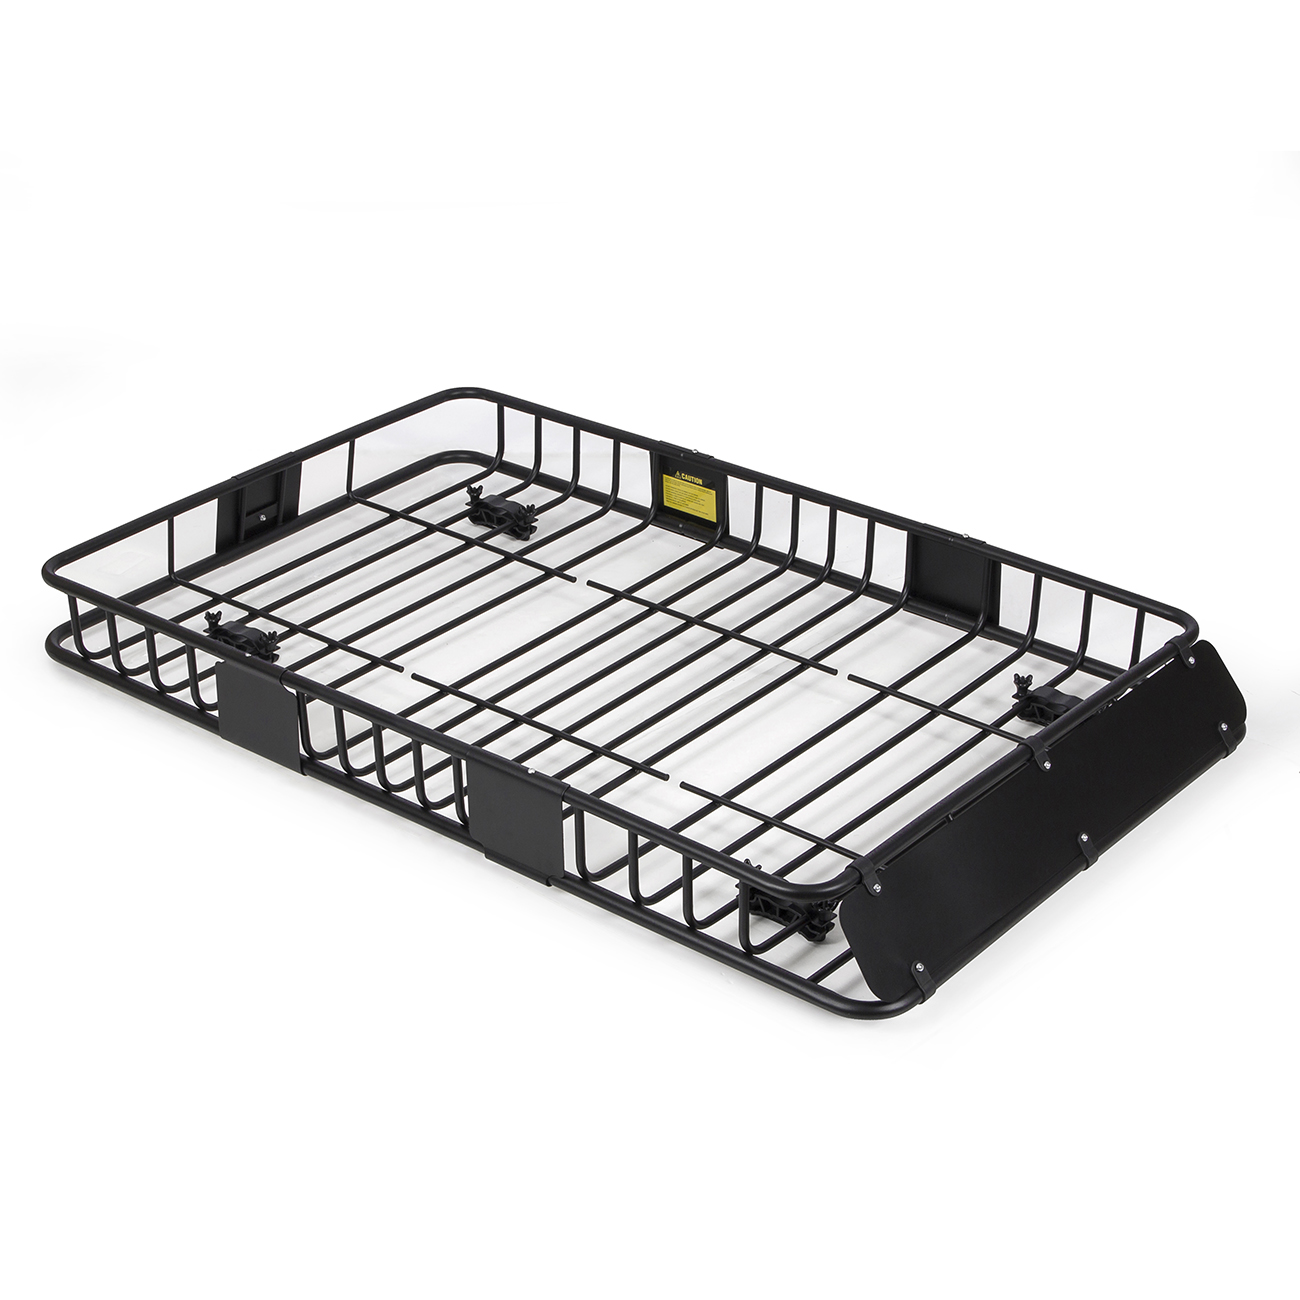 "Arksen 64"" Universal Black Roof Rack Cargo with Extension..."